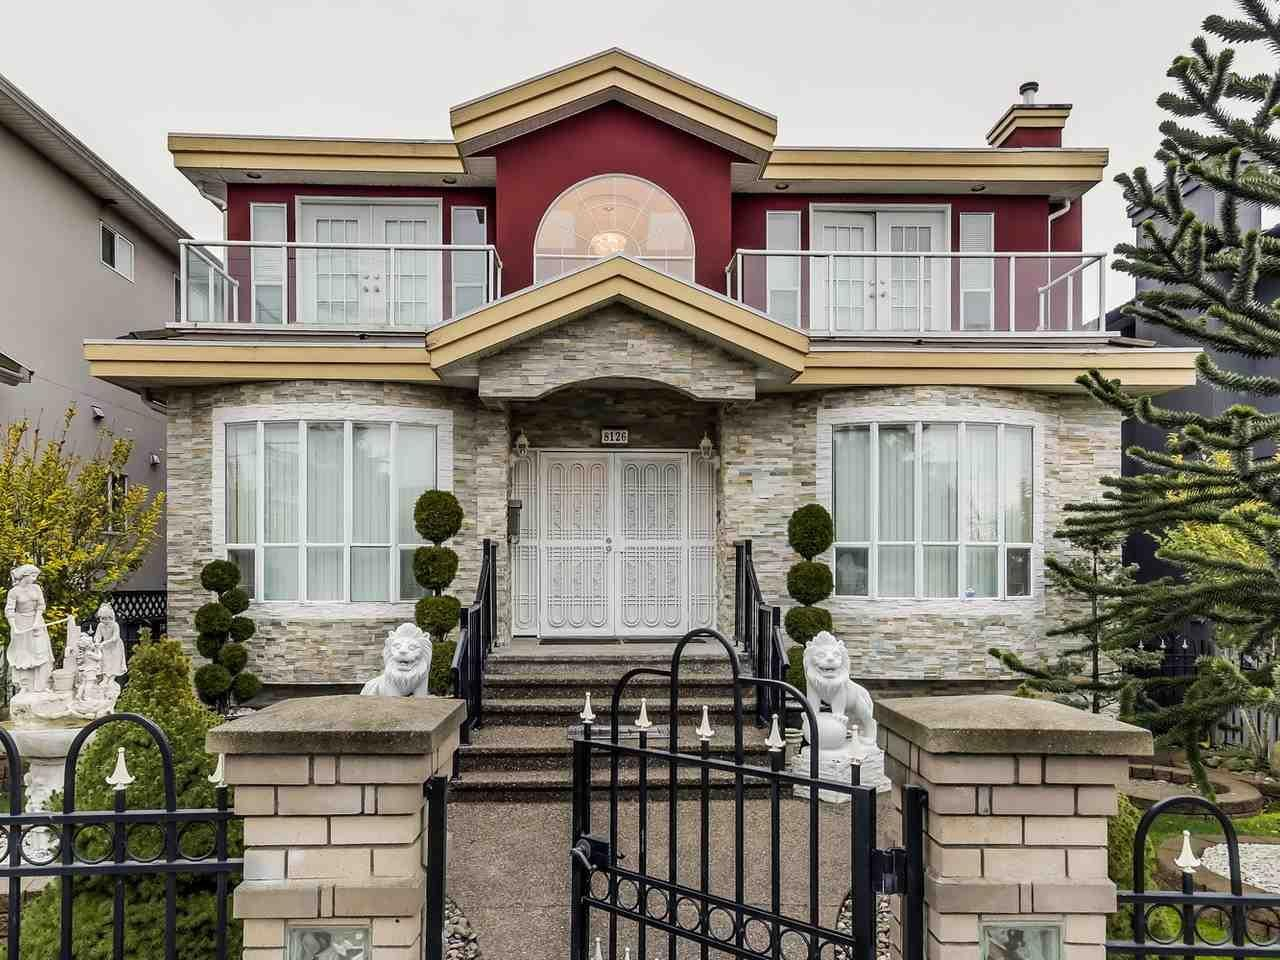 R2025722 - 8126 PRINCE EDWARD STREET, South Vancouver, Vancouver, BC - House/Single Family